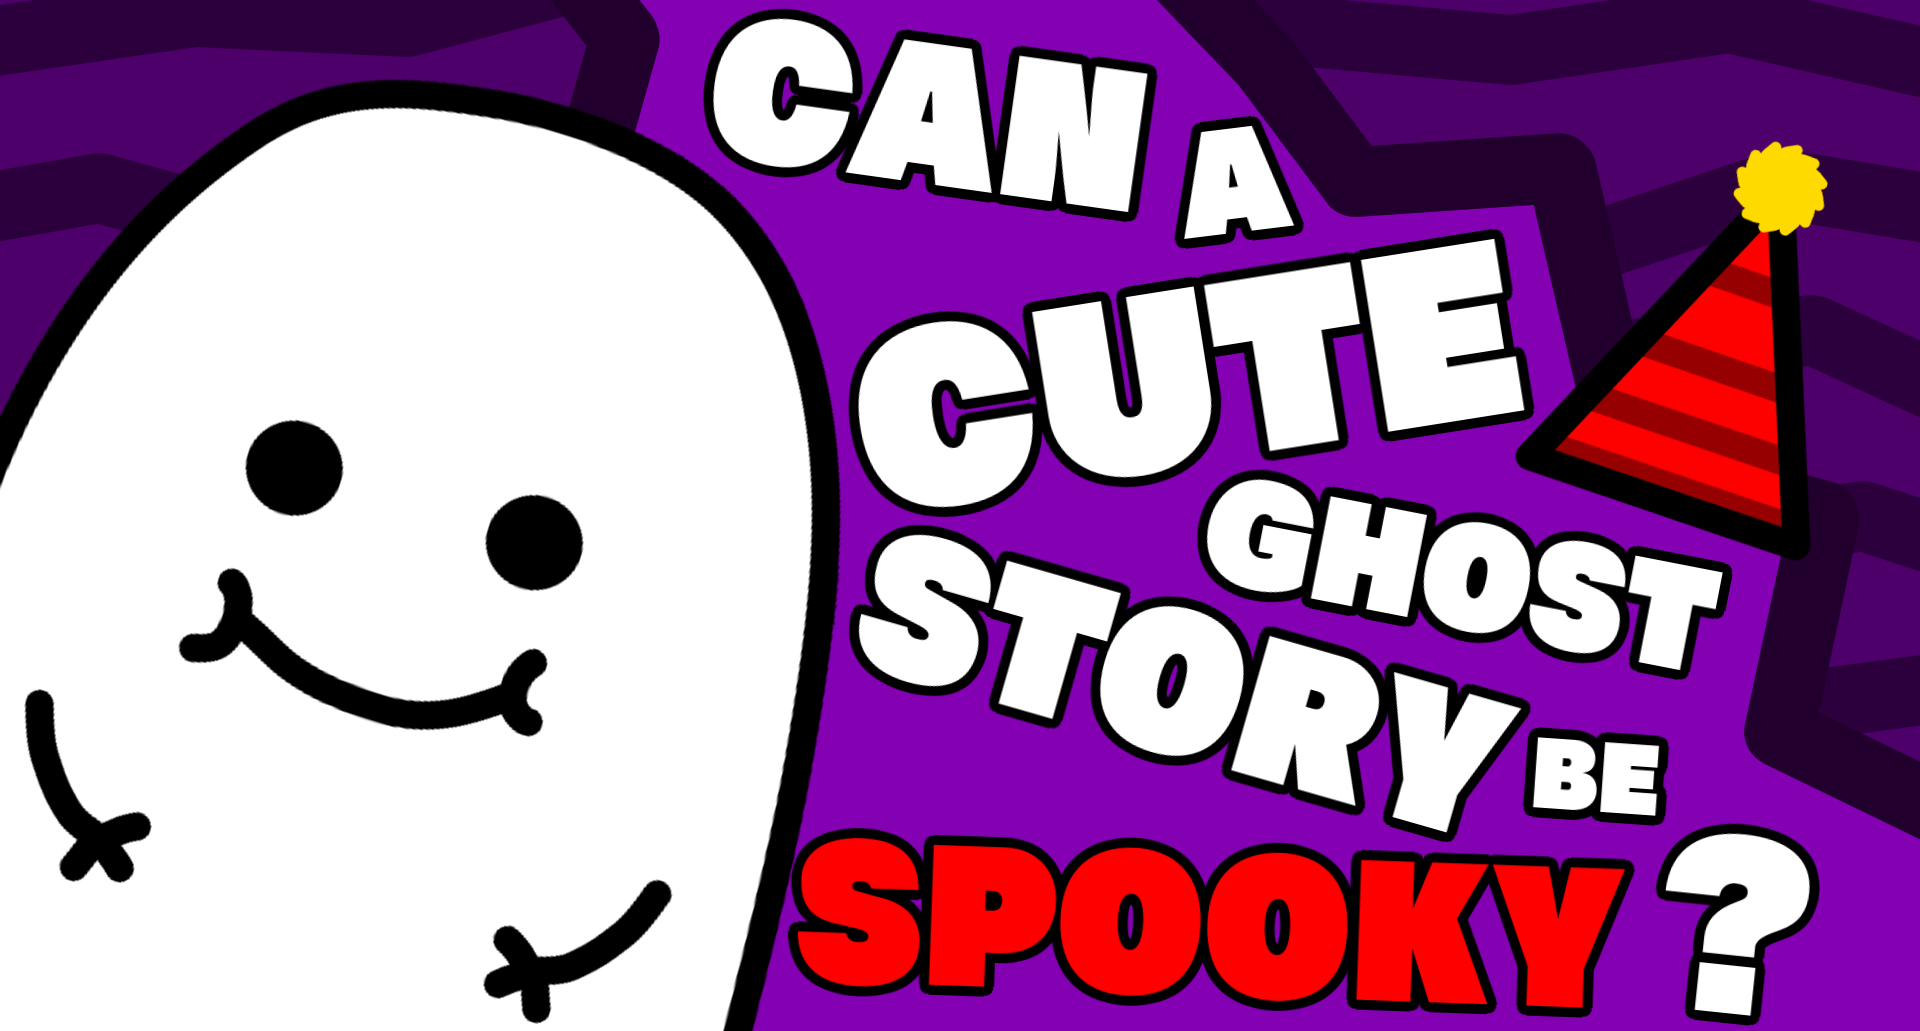 Can A Cute Ghost Story Be Spooky?